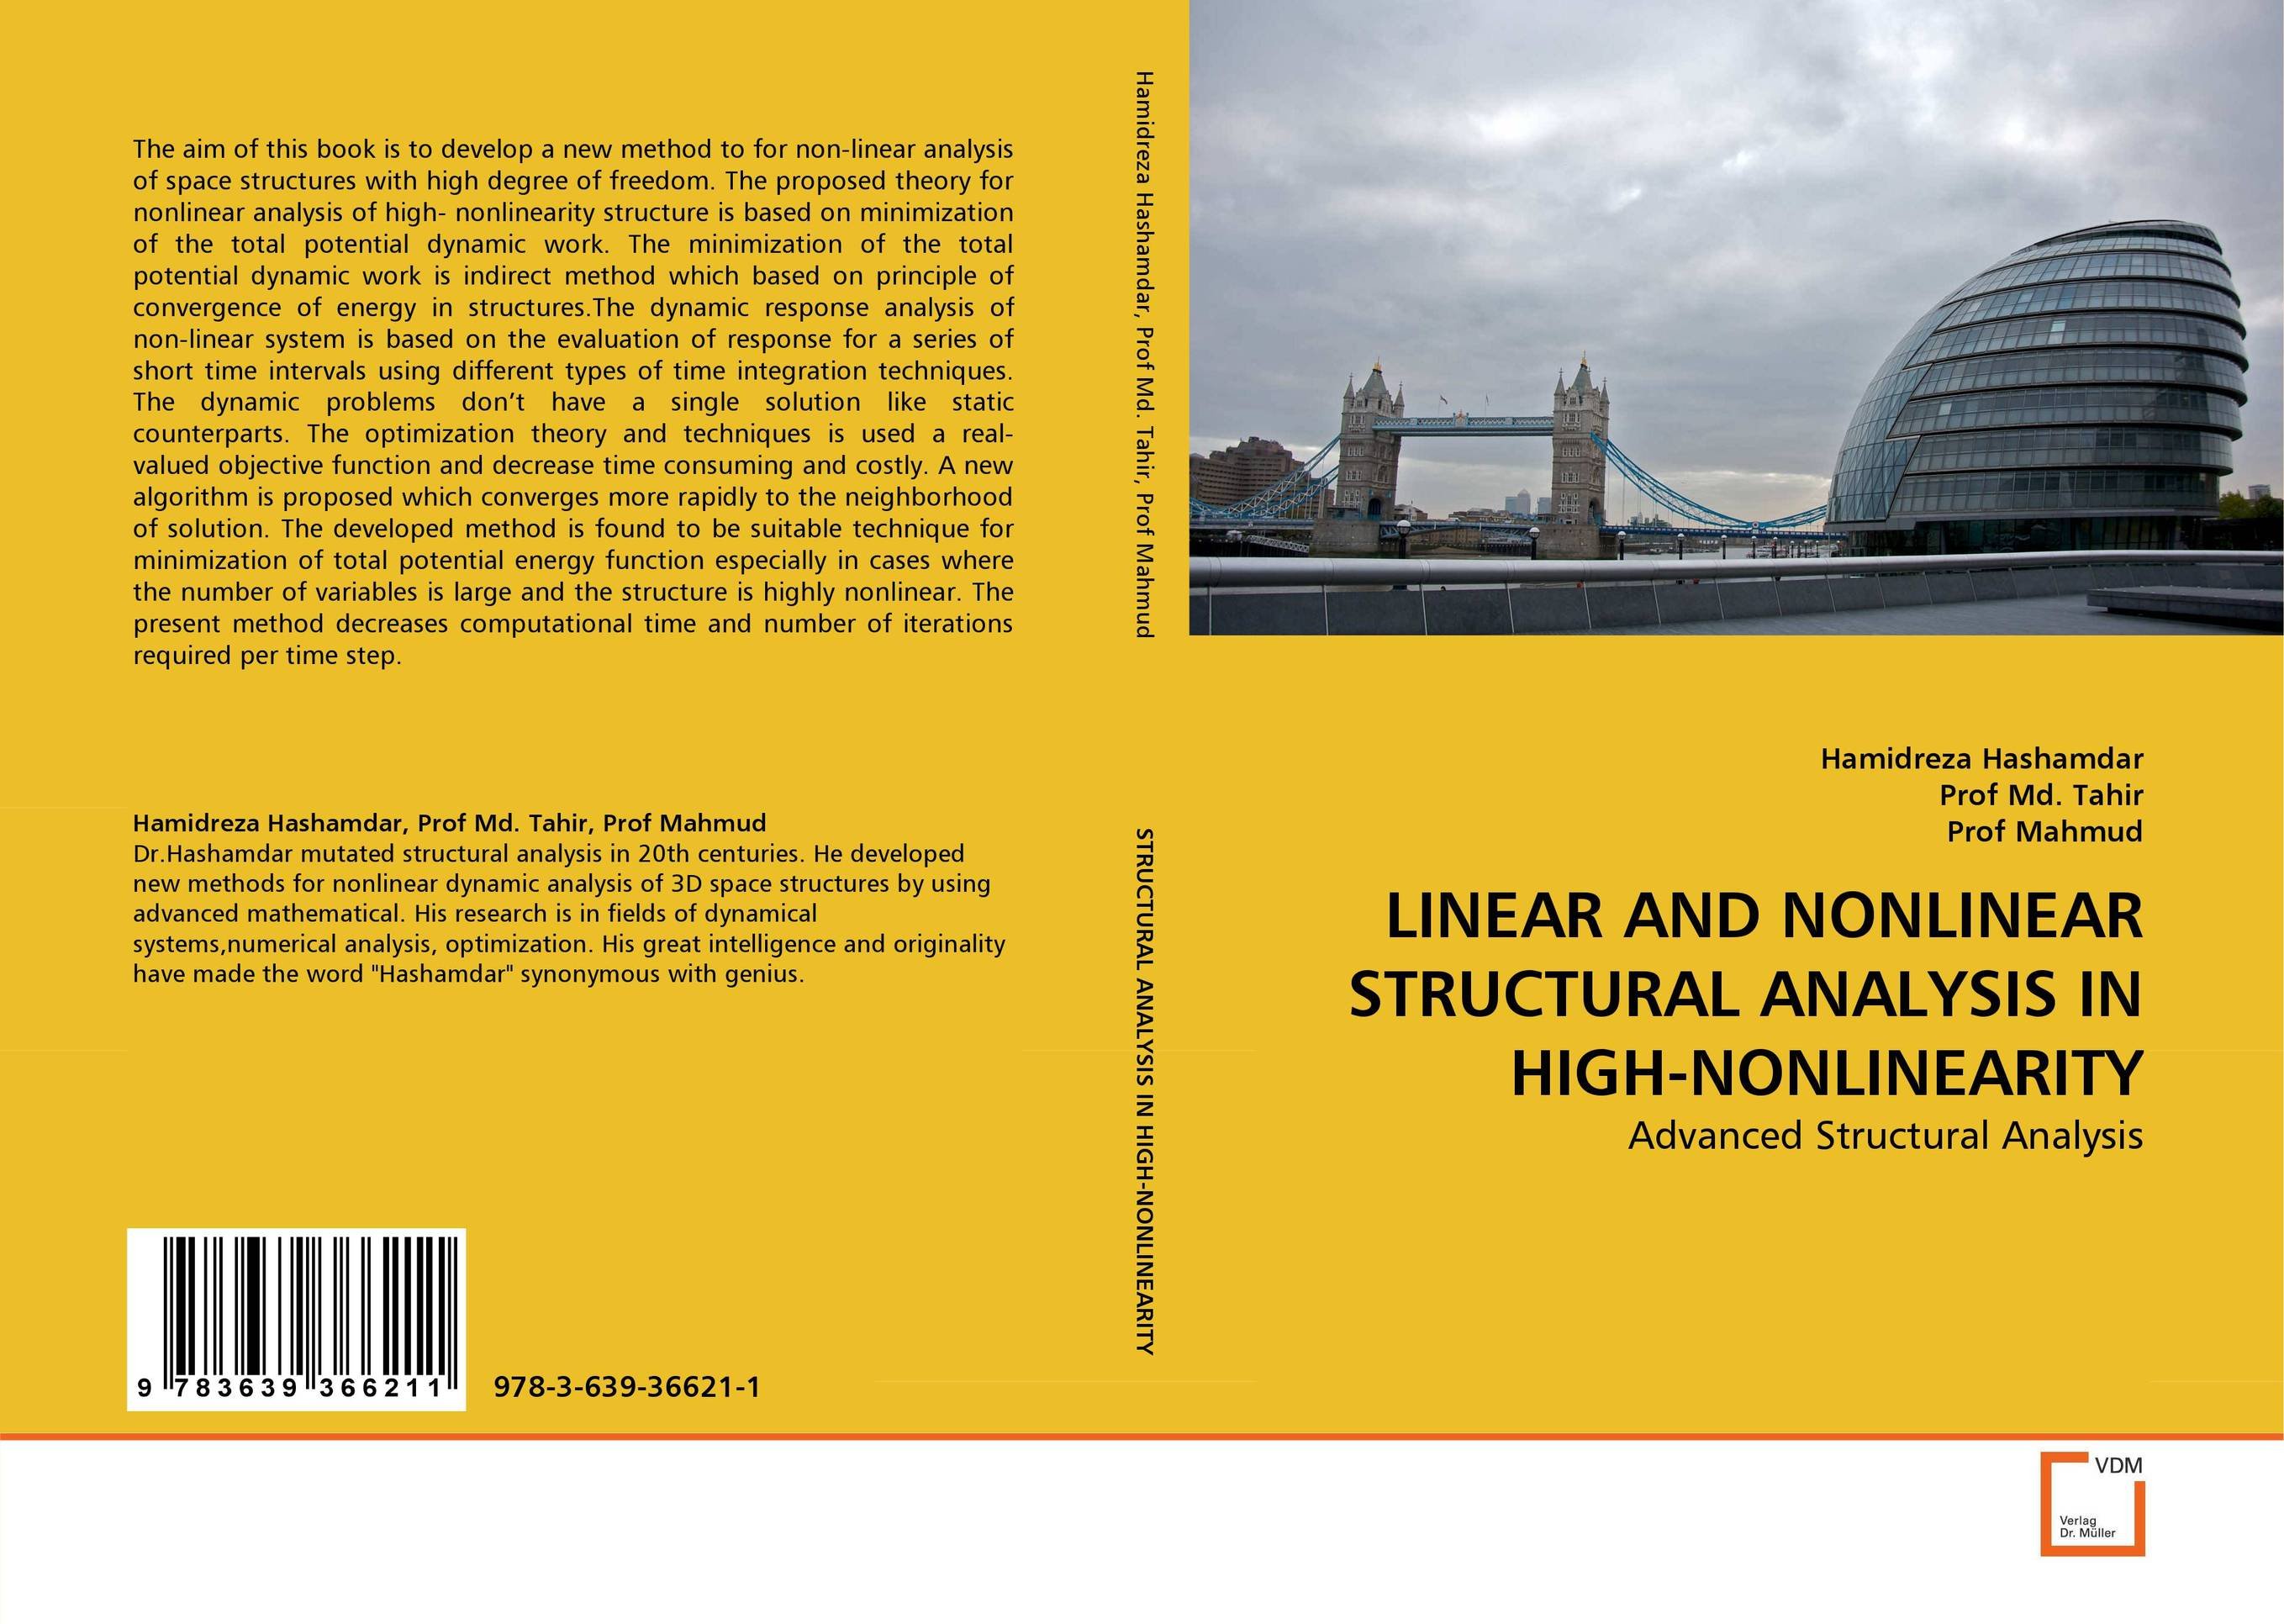 LINEAR AND NONLINEAR STRUCTURAL ANALYSIS IN HIGH-NONLINEARITY complete dynamic analysis of stewart platform based on workspace